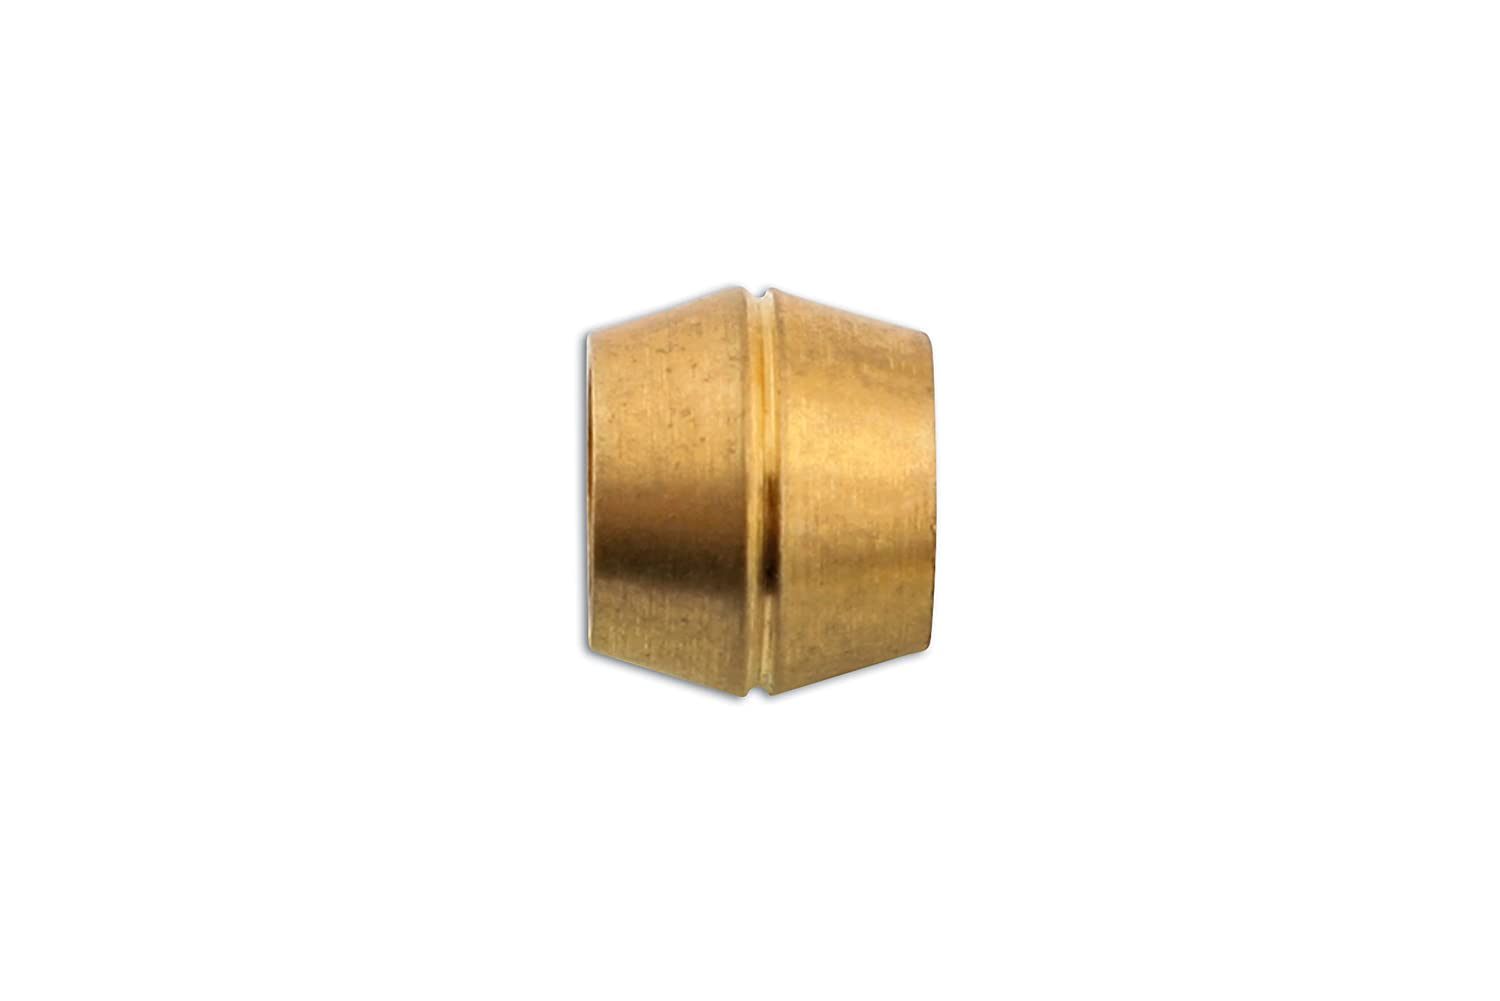 Connect 31148 6mm Brass Olive Barrel (Pack of 100) The Tool Connection Ltd.